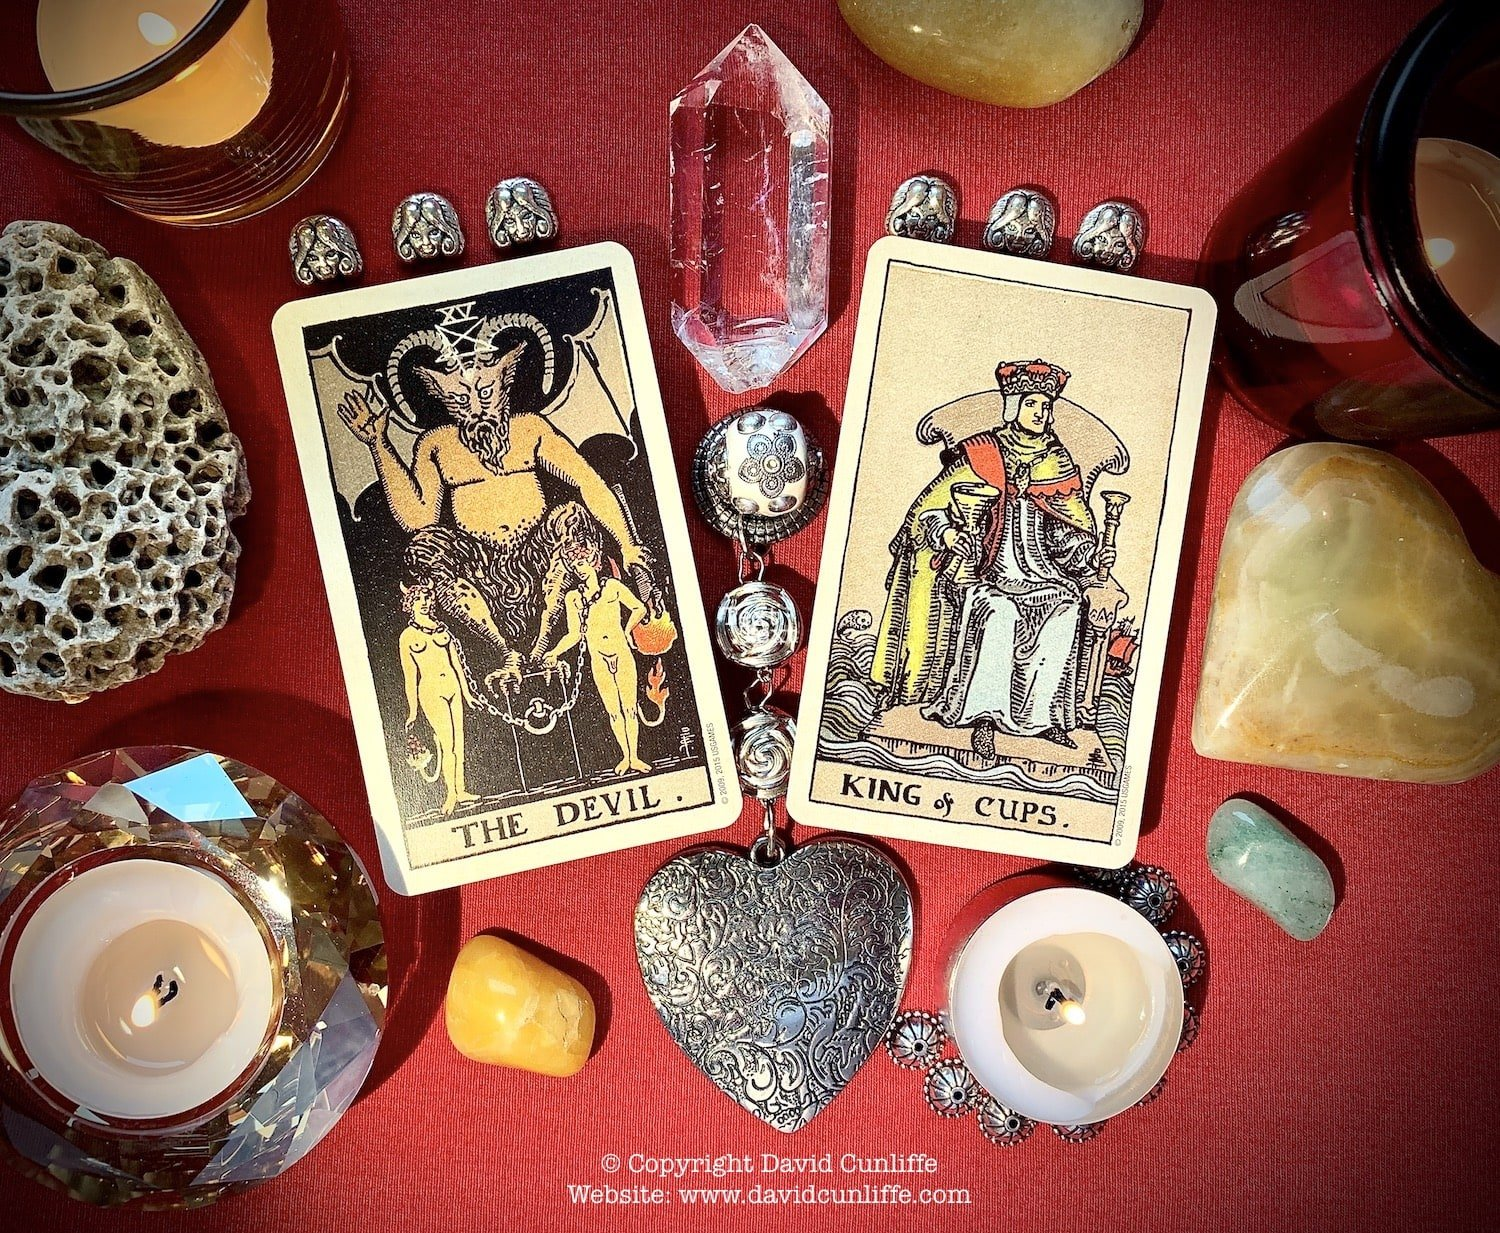 Tarot, the Devil card and the King of Cups card.